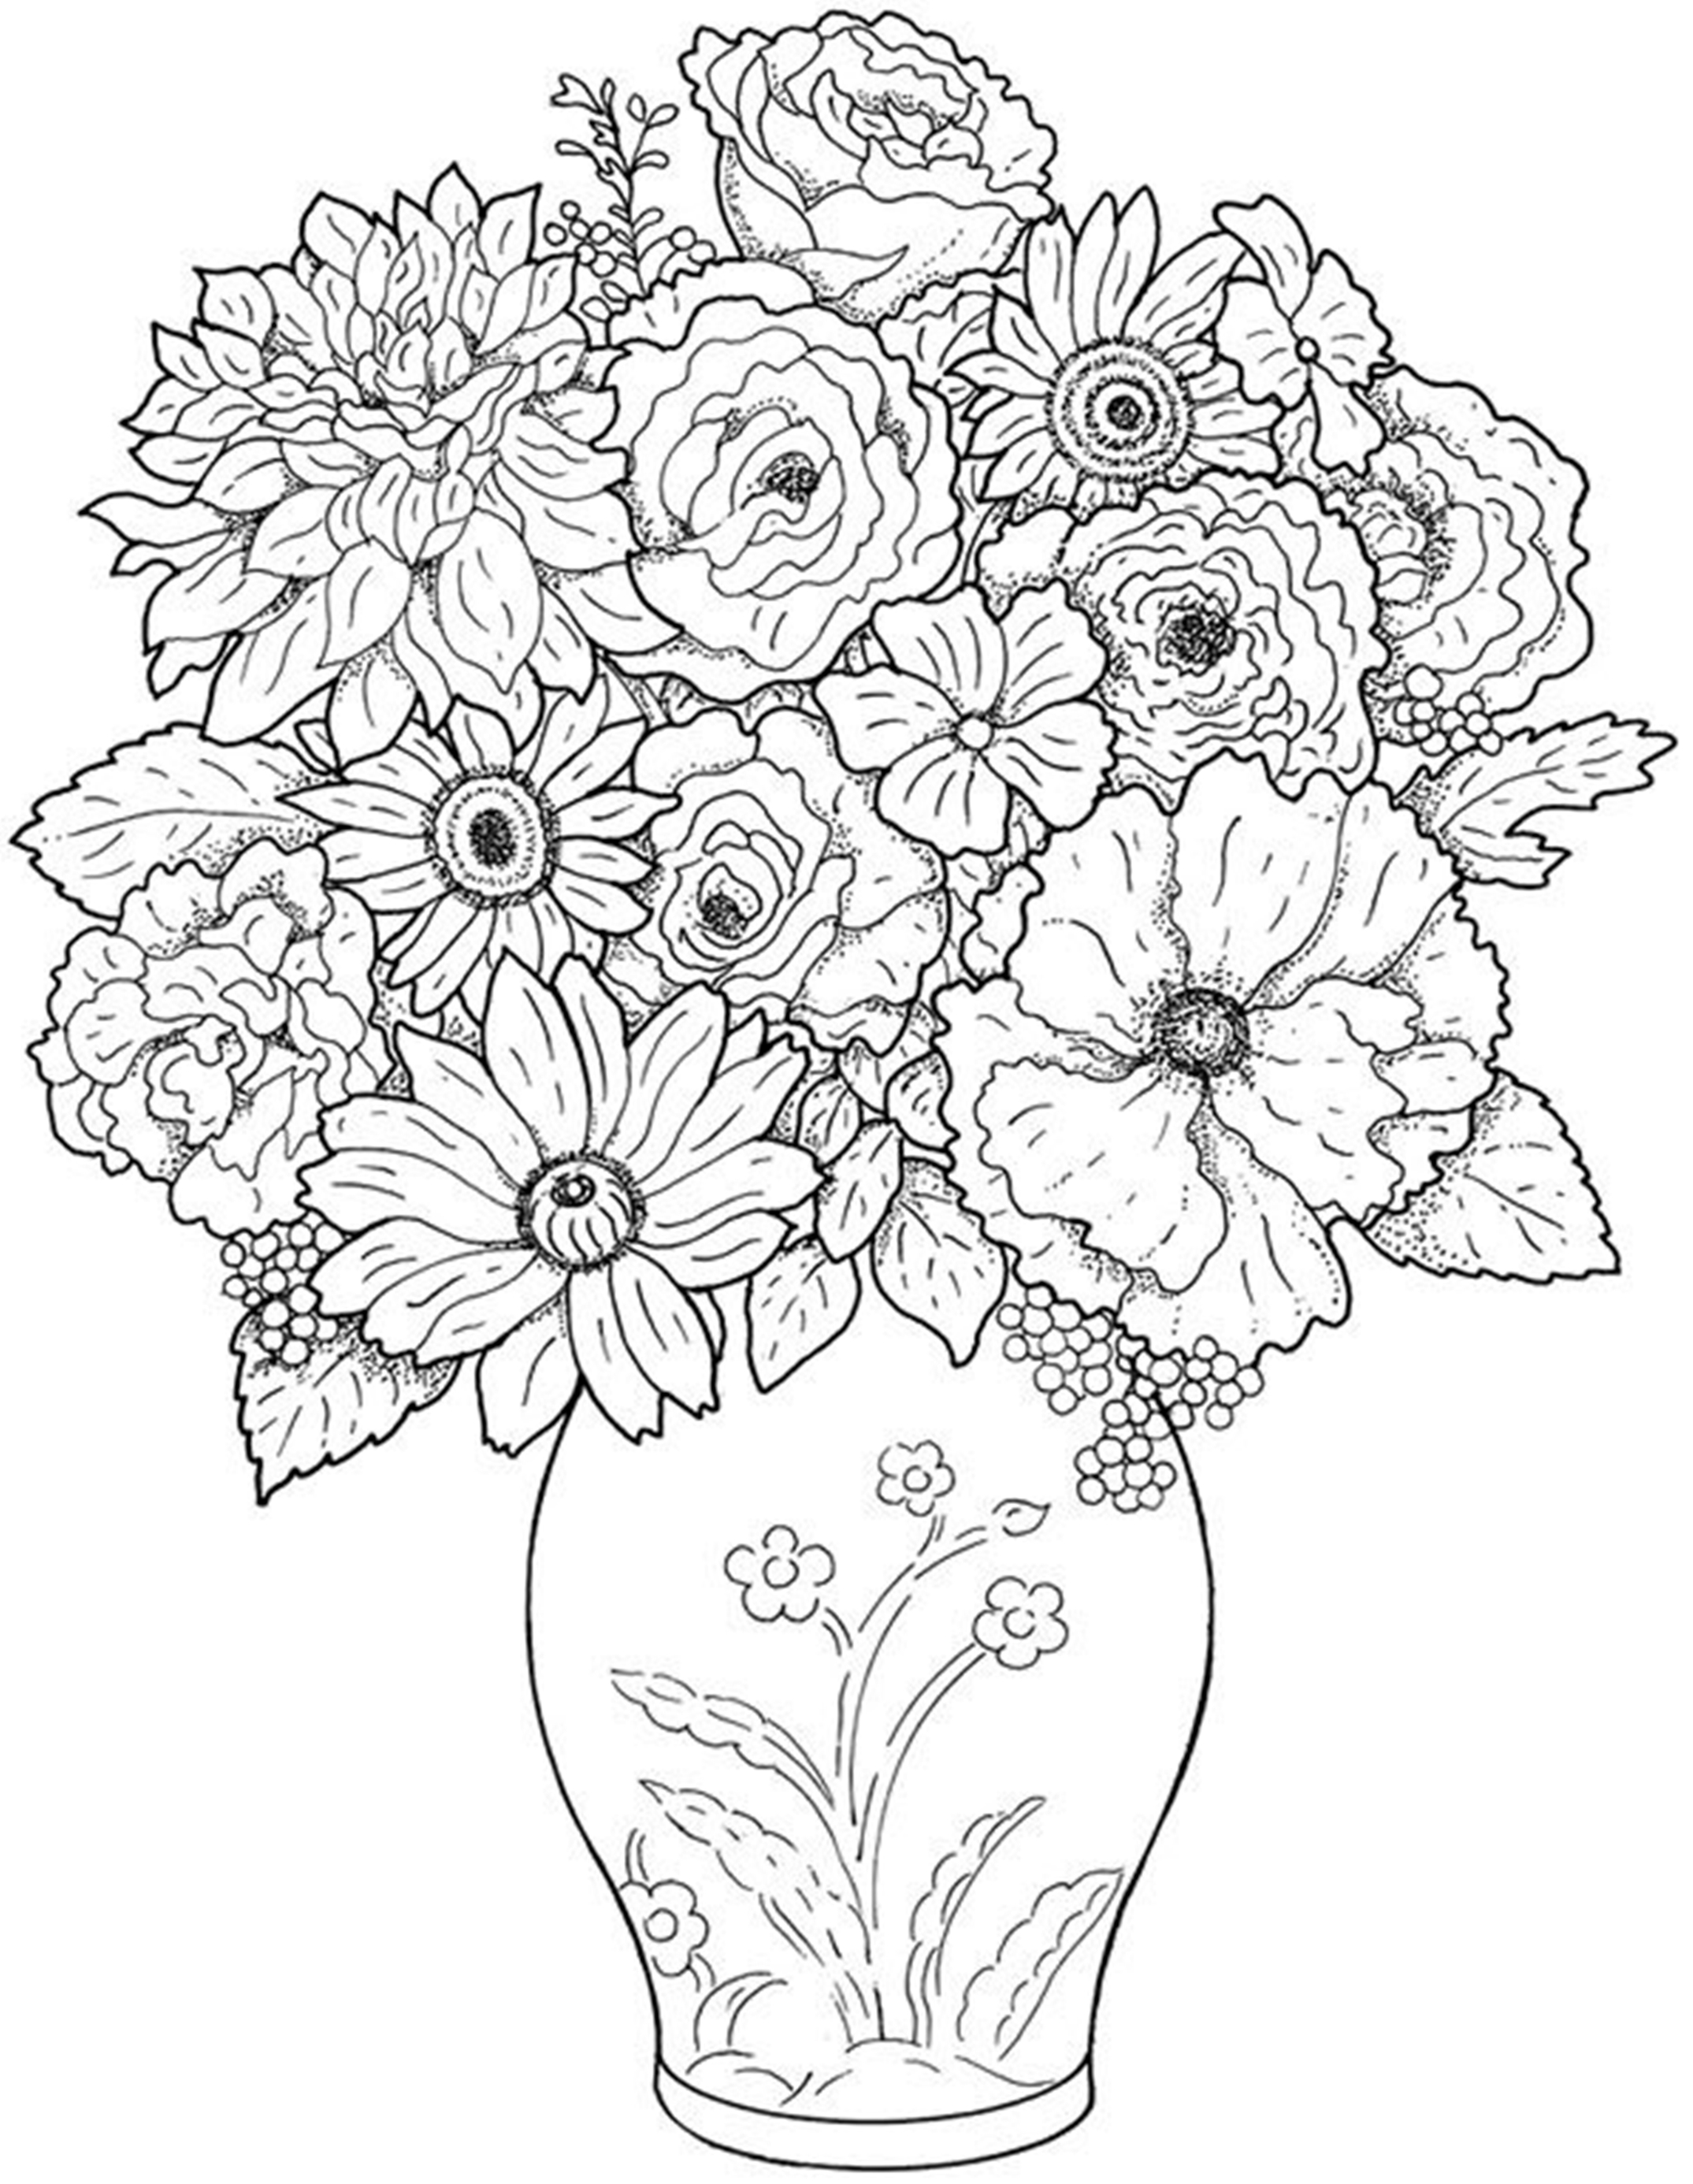 flower coloring pages adults adult coloring page petunias the graphics fairy pages flower coloring adults